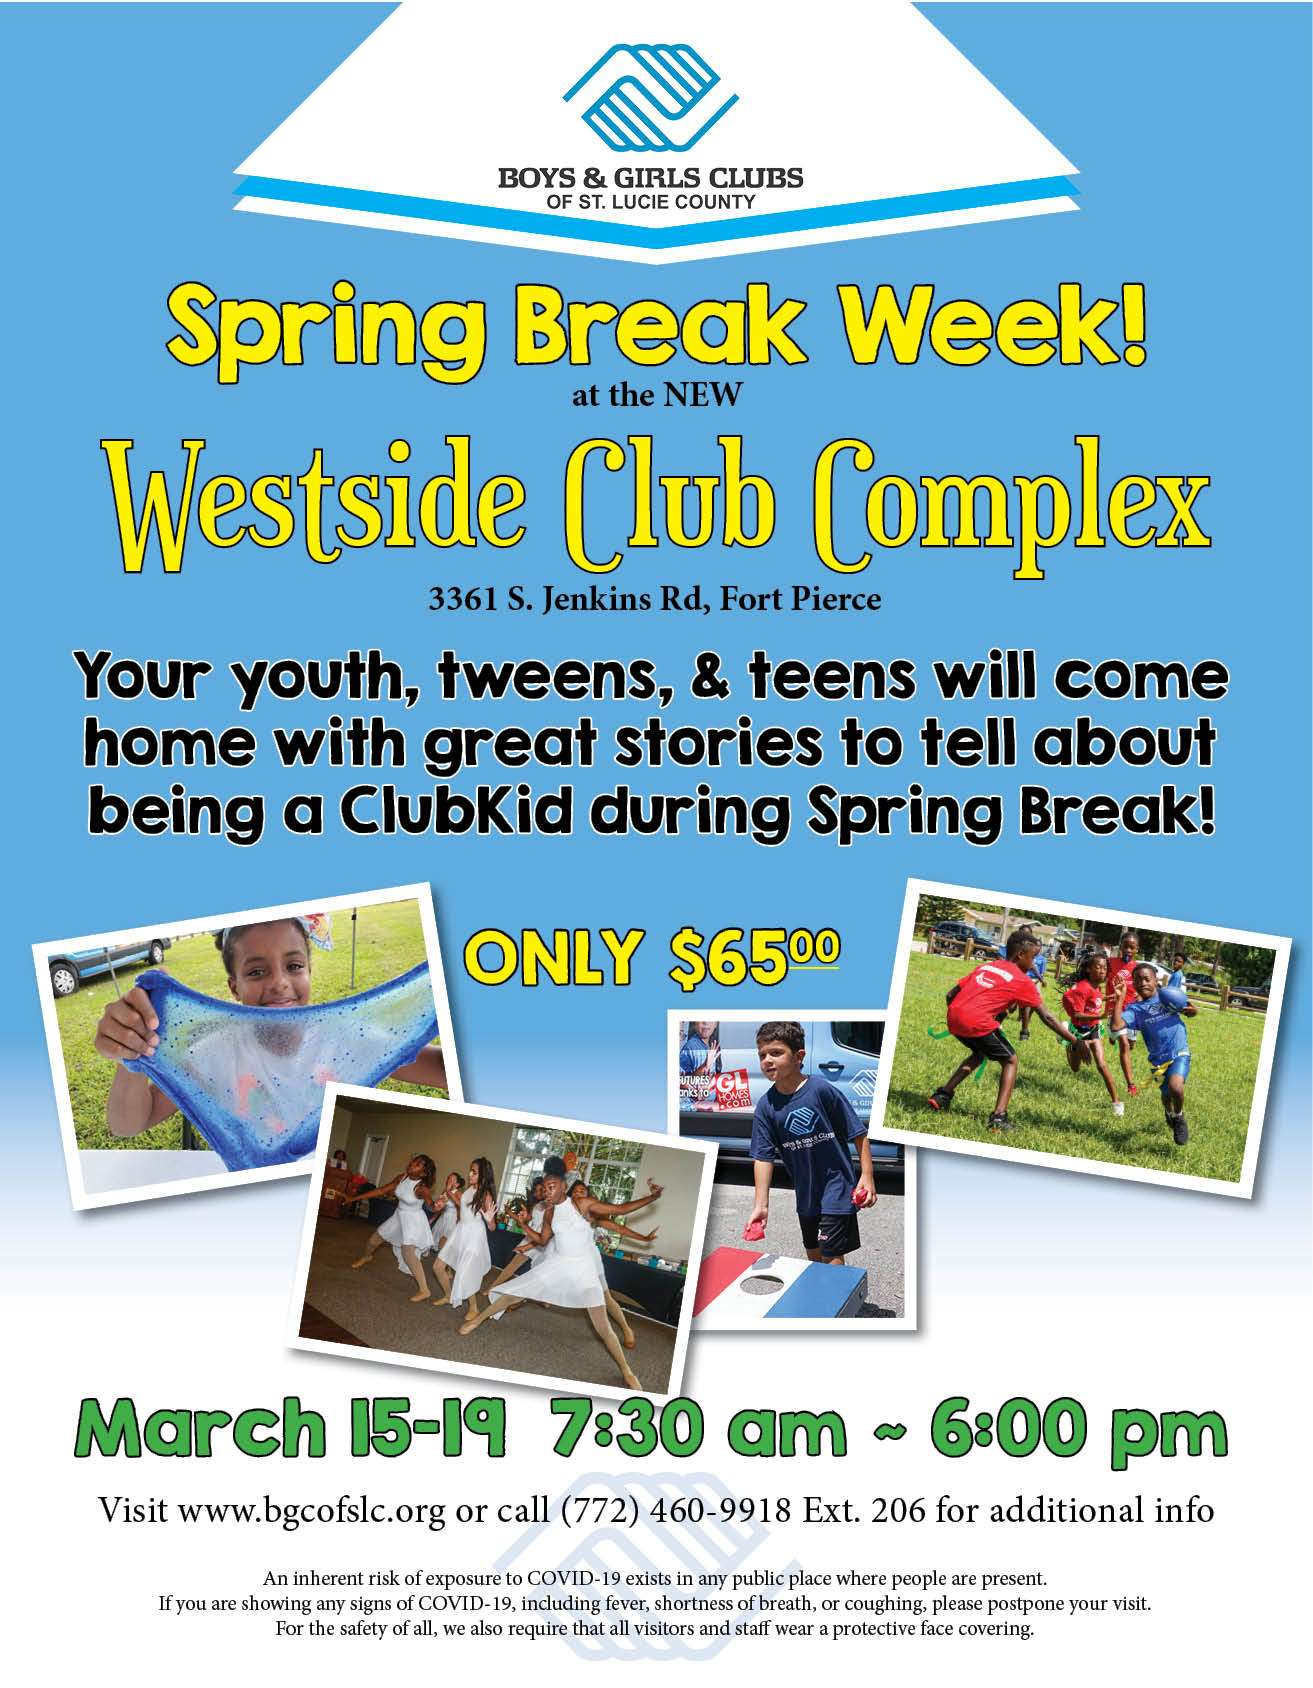 Spring Break Camp At Westside Club Complex